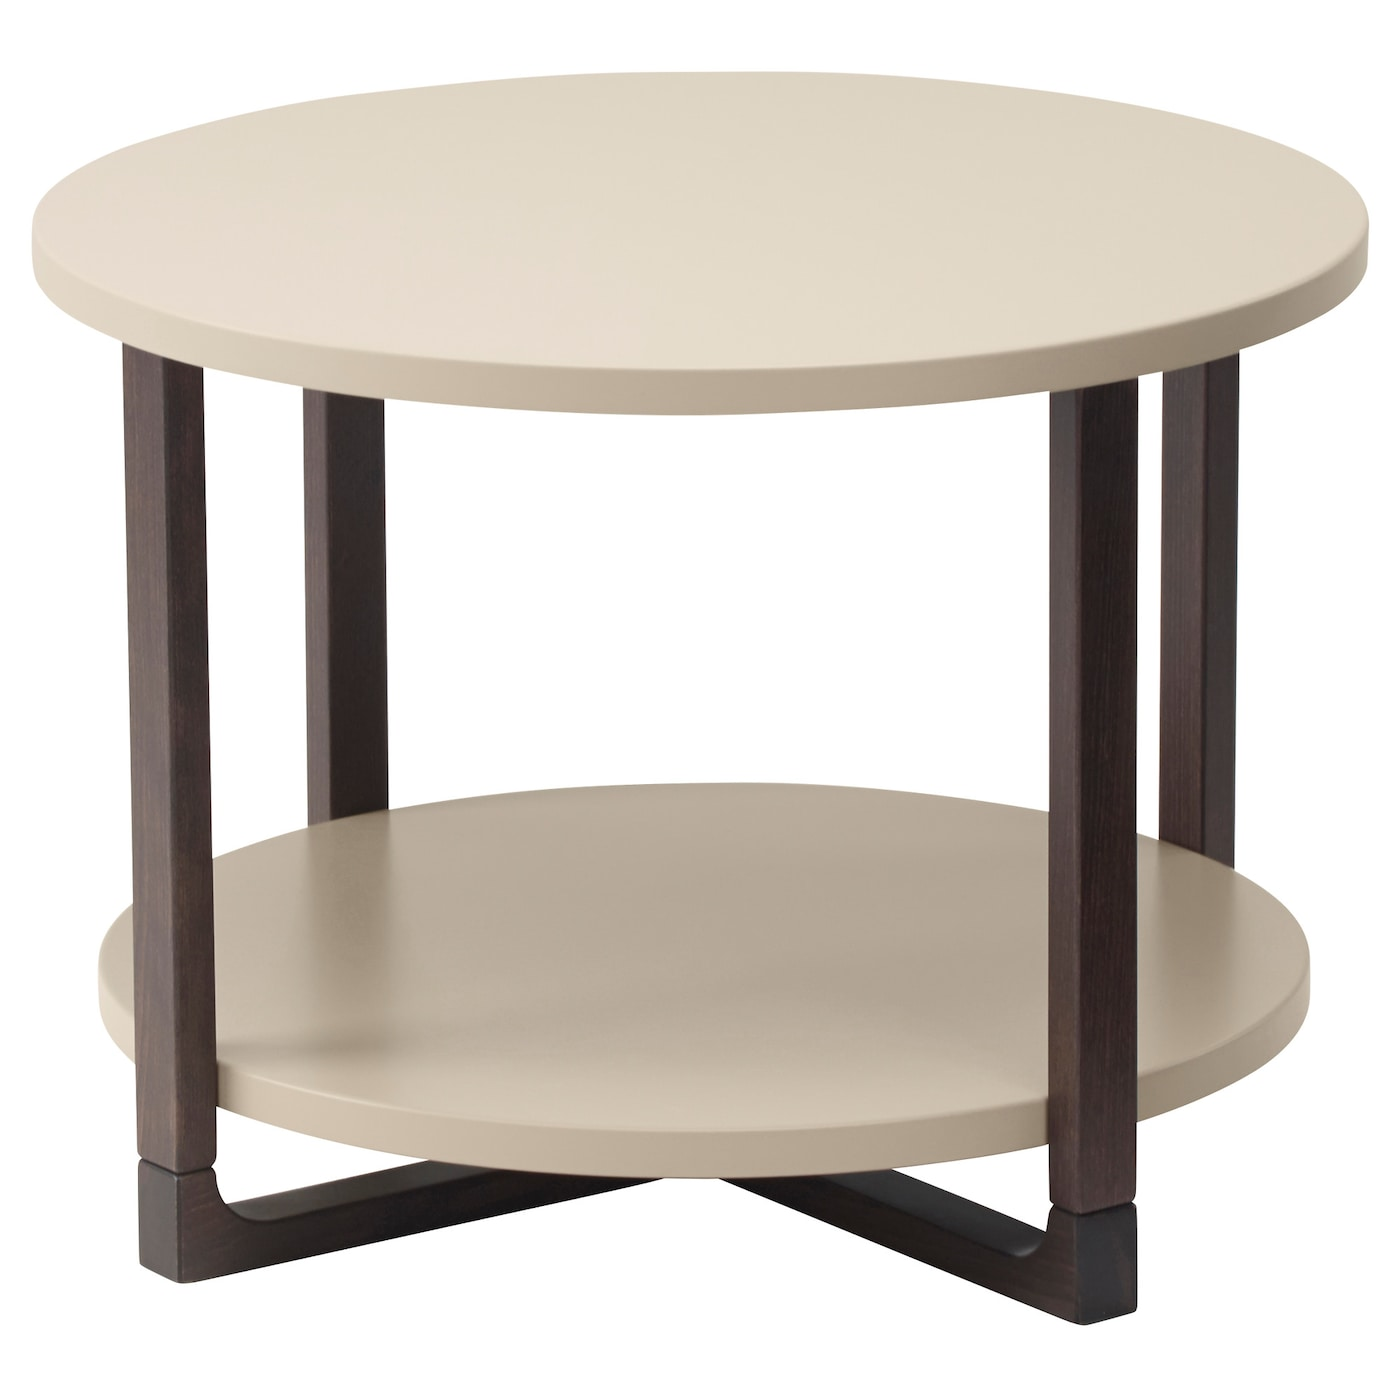 Rissna side table beige 60 cm ikea Side and coffee tables